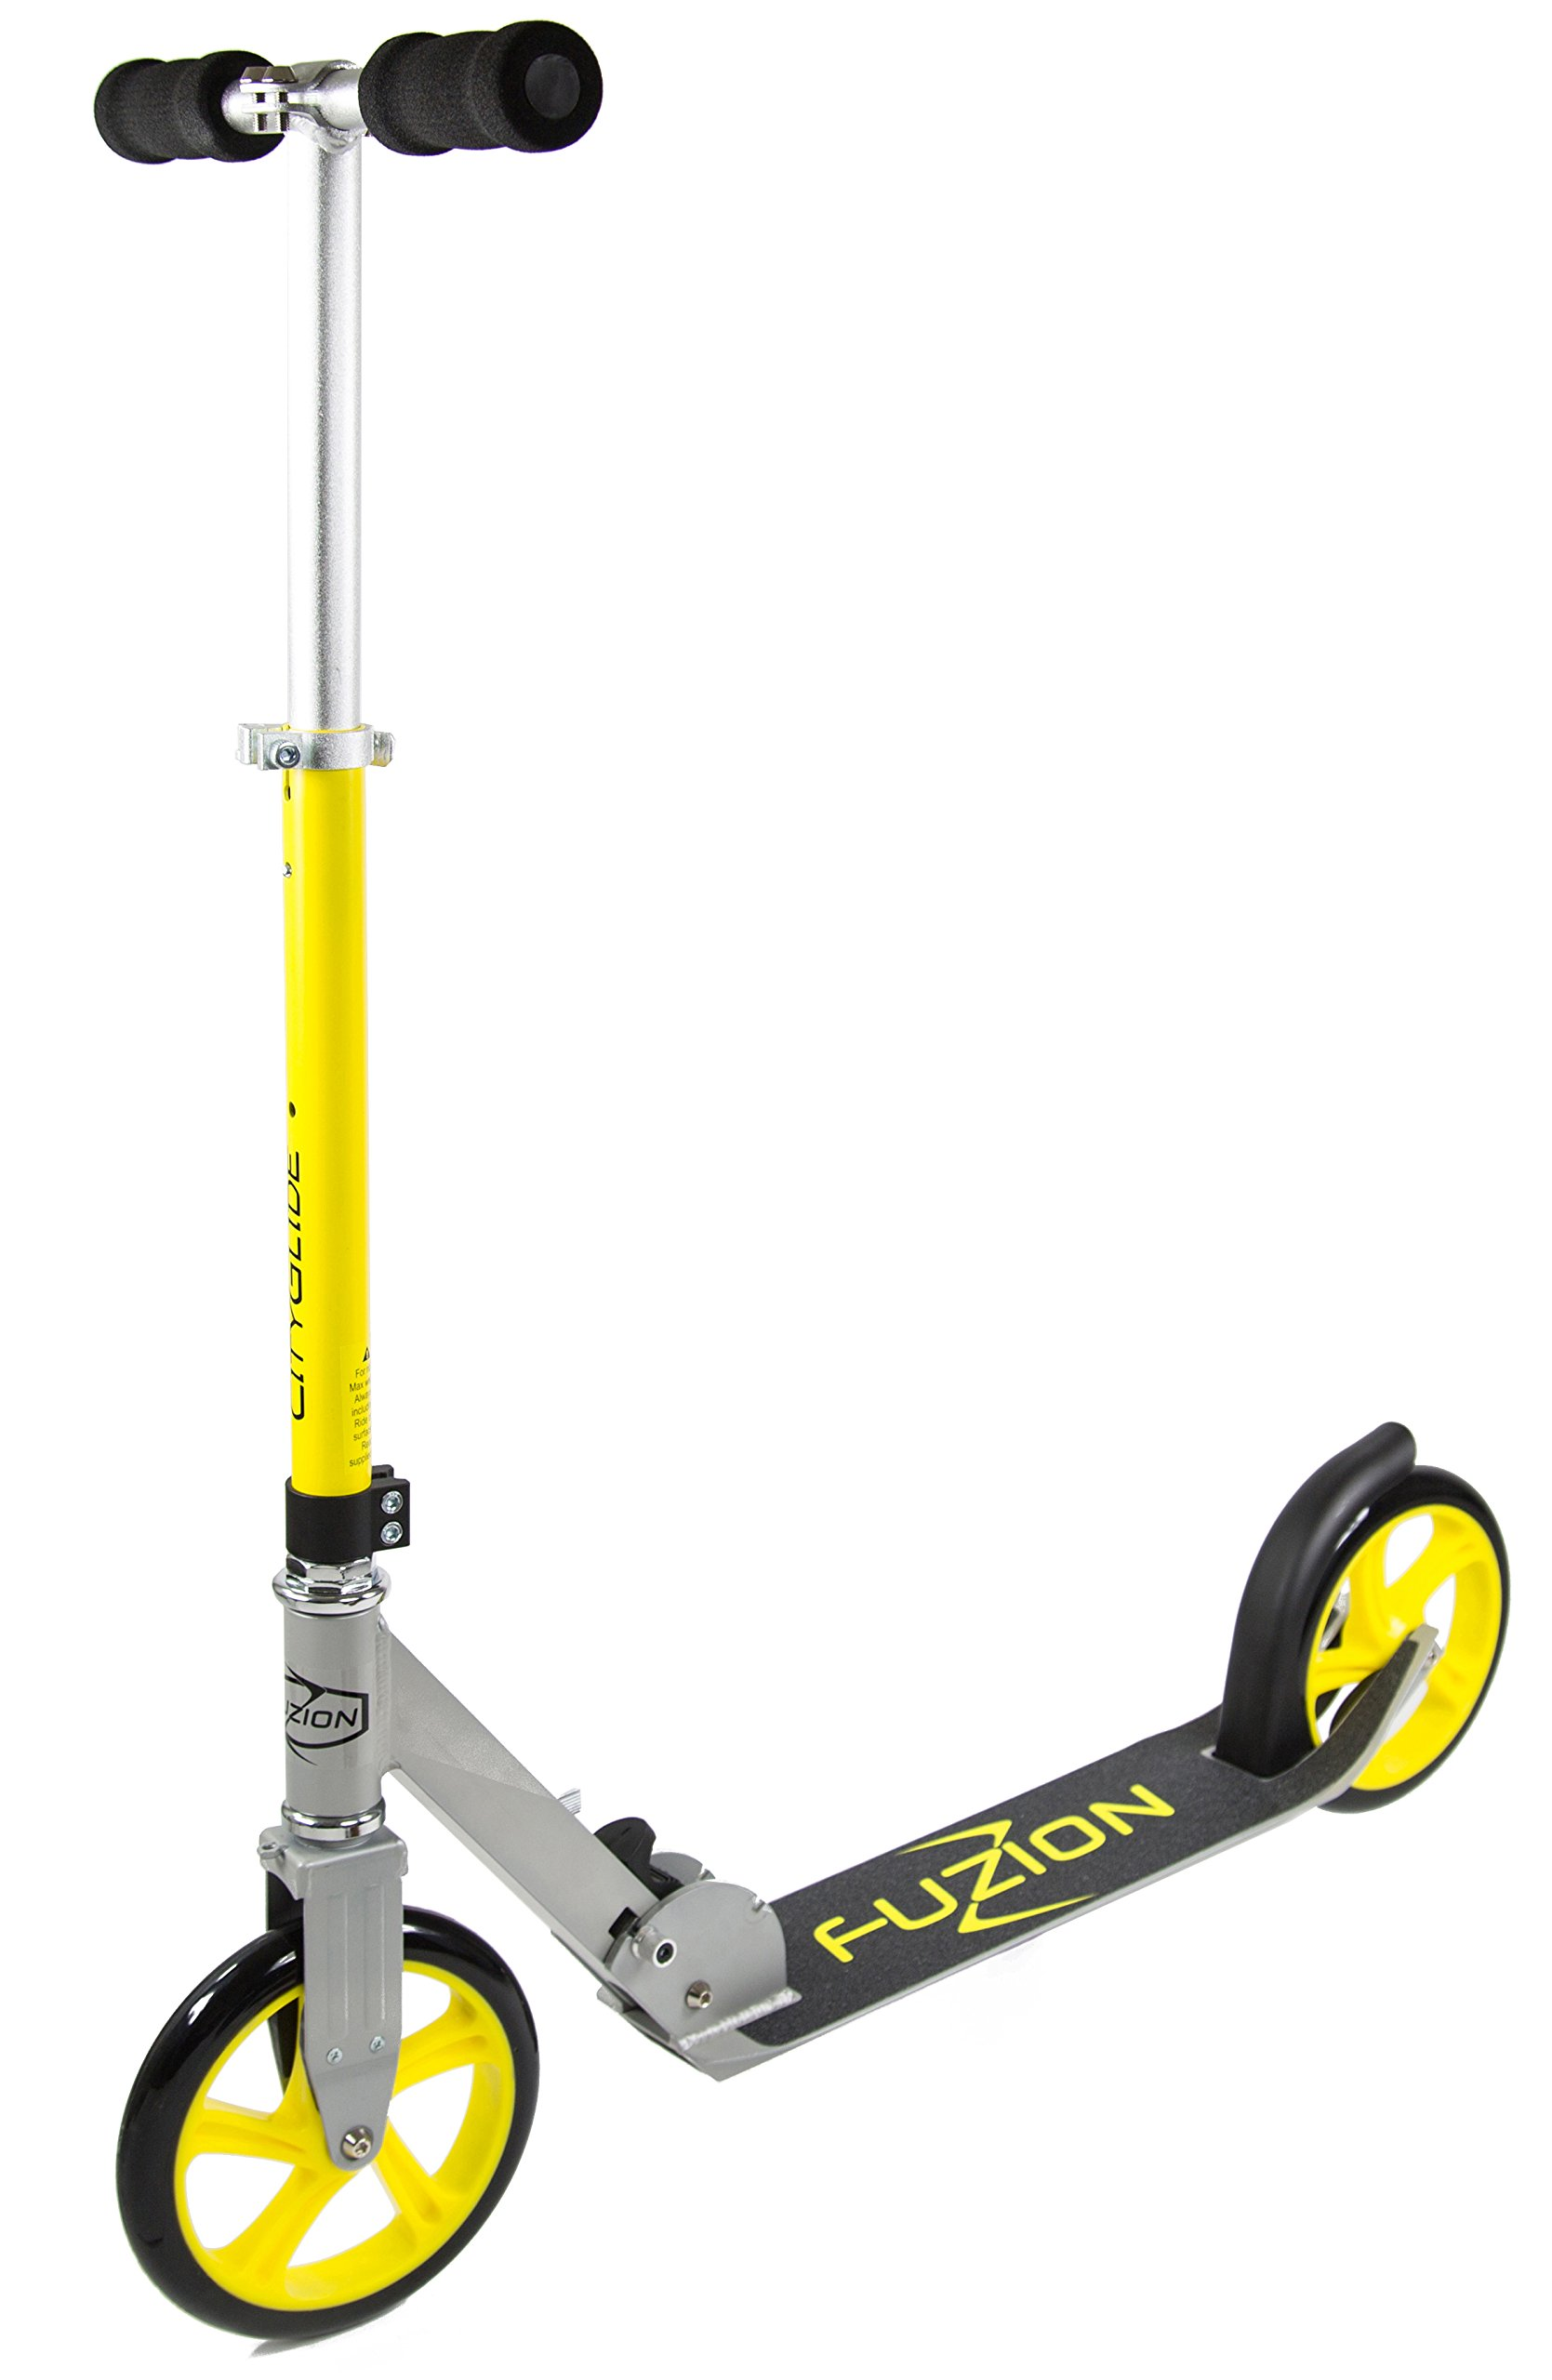 Fuzion Cityglide Adult Kick Scooter - Smooth, Pro Push Urban Scooters Adults Kids Teens, Commuter Scooters, City Scooters - Folding Scooter Adjustable T-Bar - Big Kids, Boys Girls (Max 220 lbs) by Unknown